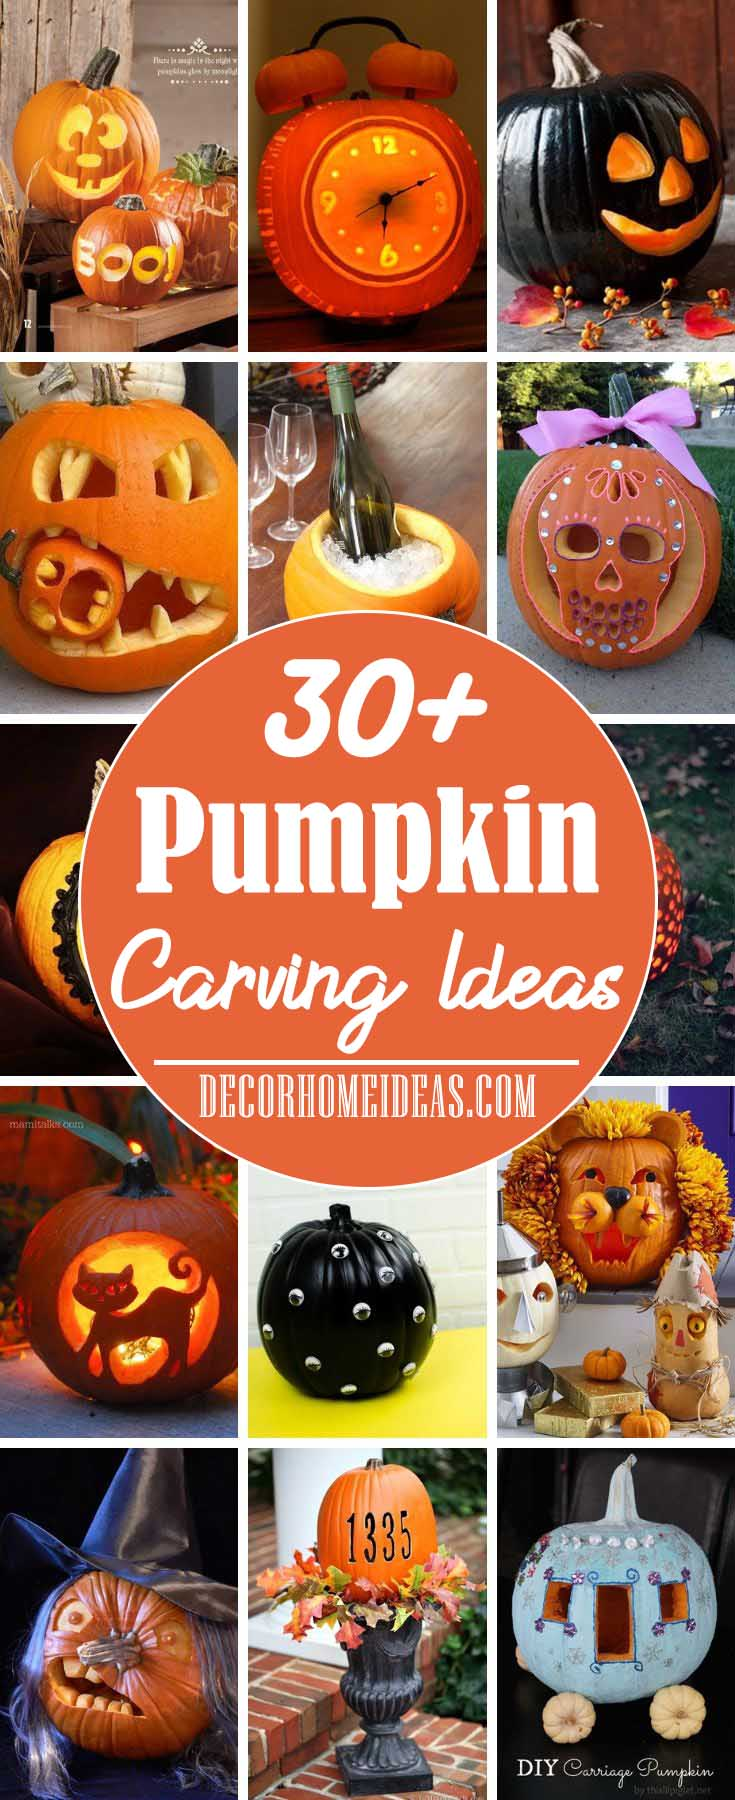 Best Pumpkin Carving Ideas #pumpkin #carving #halloween #falldecor #decorhomeideas